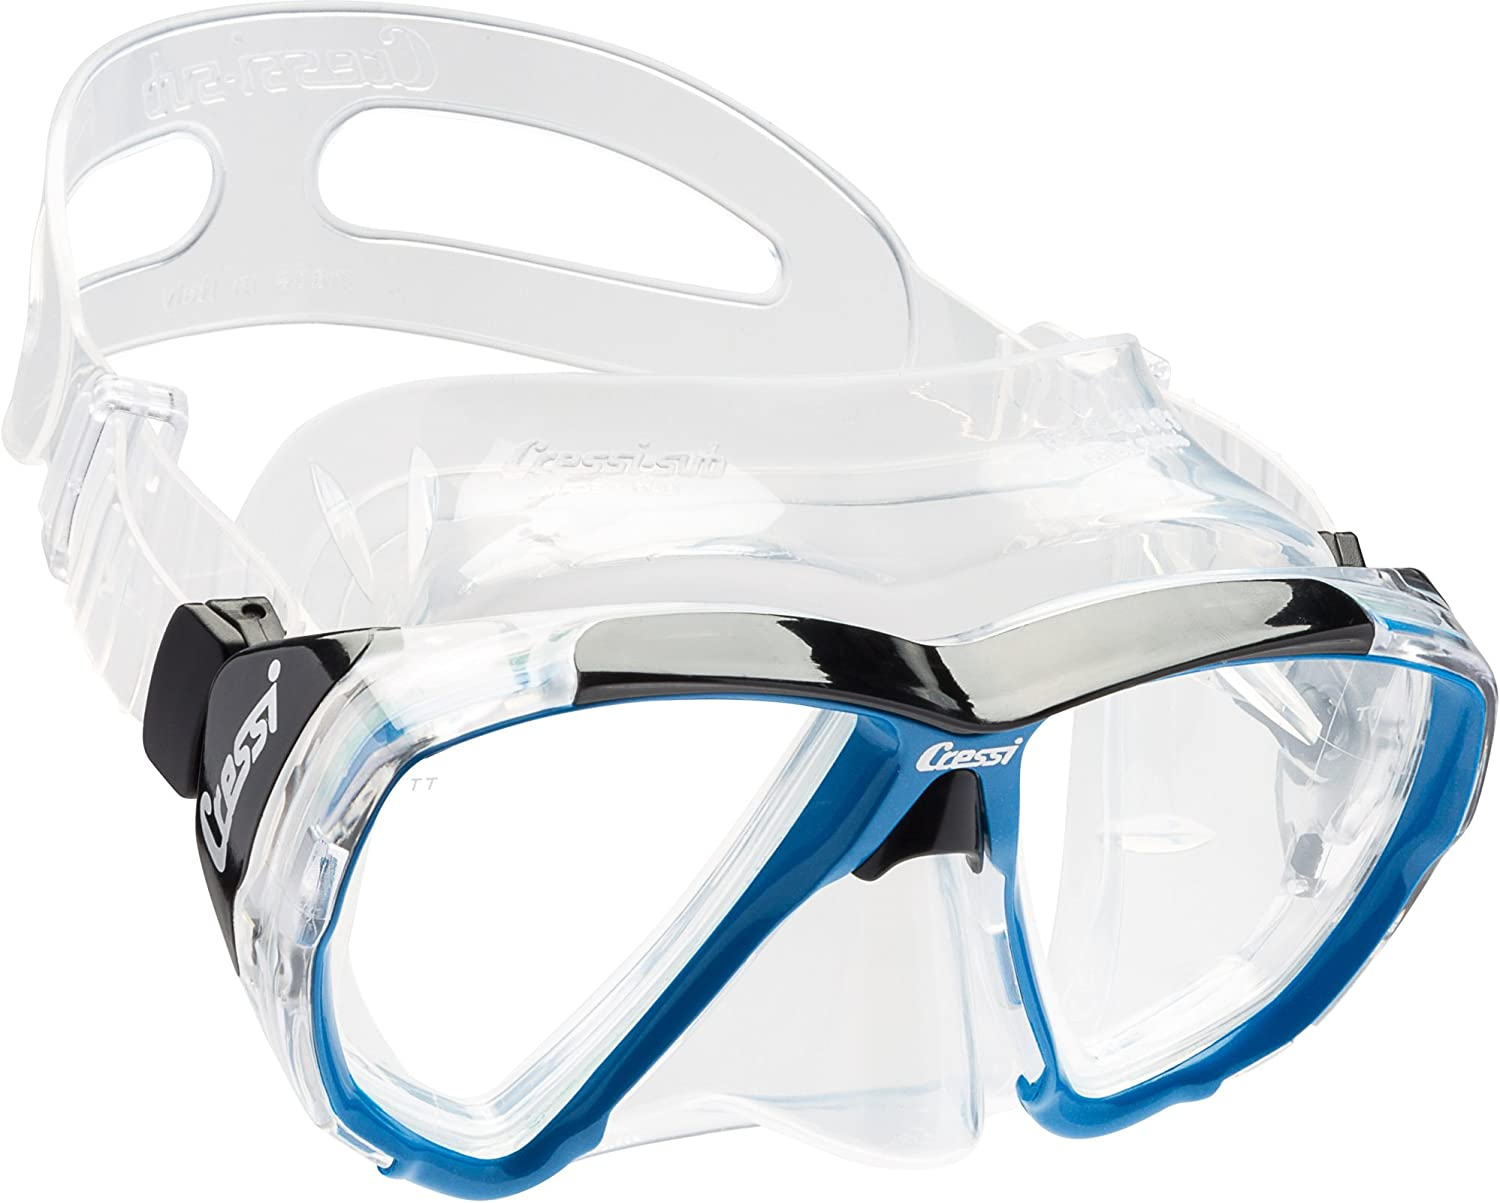 Cressi Adult Dive Mask with Inclined Lens for Scuba Diving - optical lenses available | Big Eyes: made in Italy